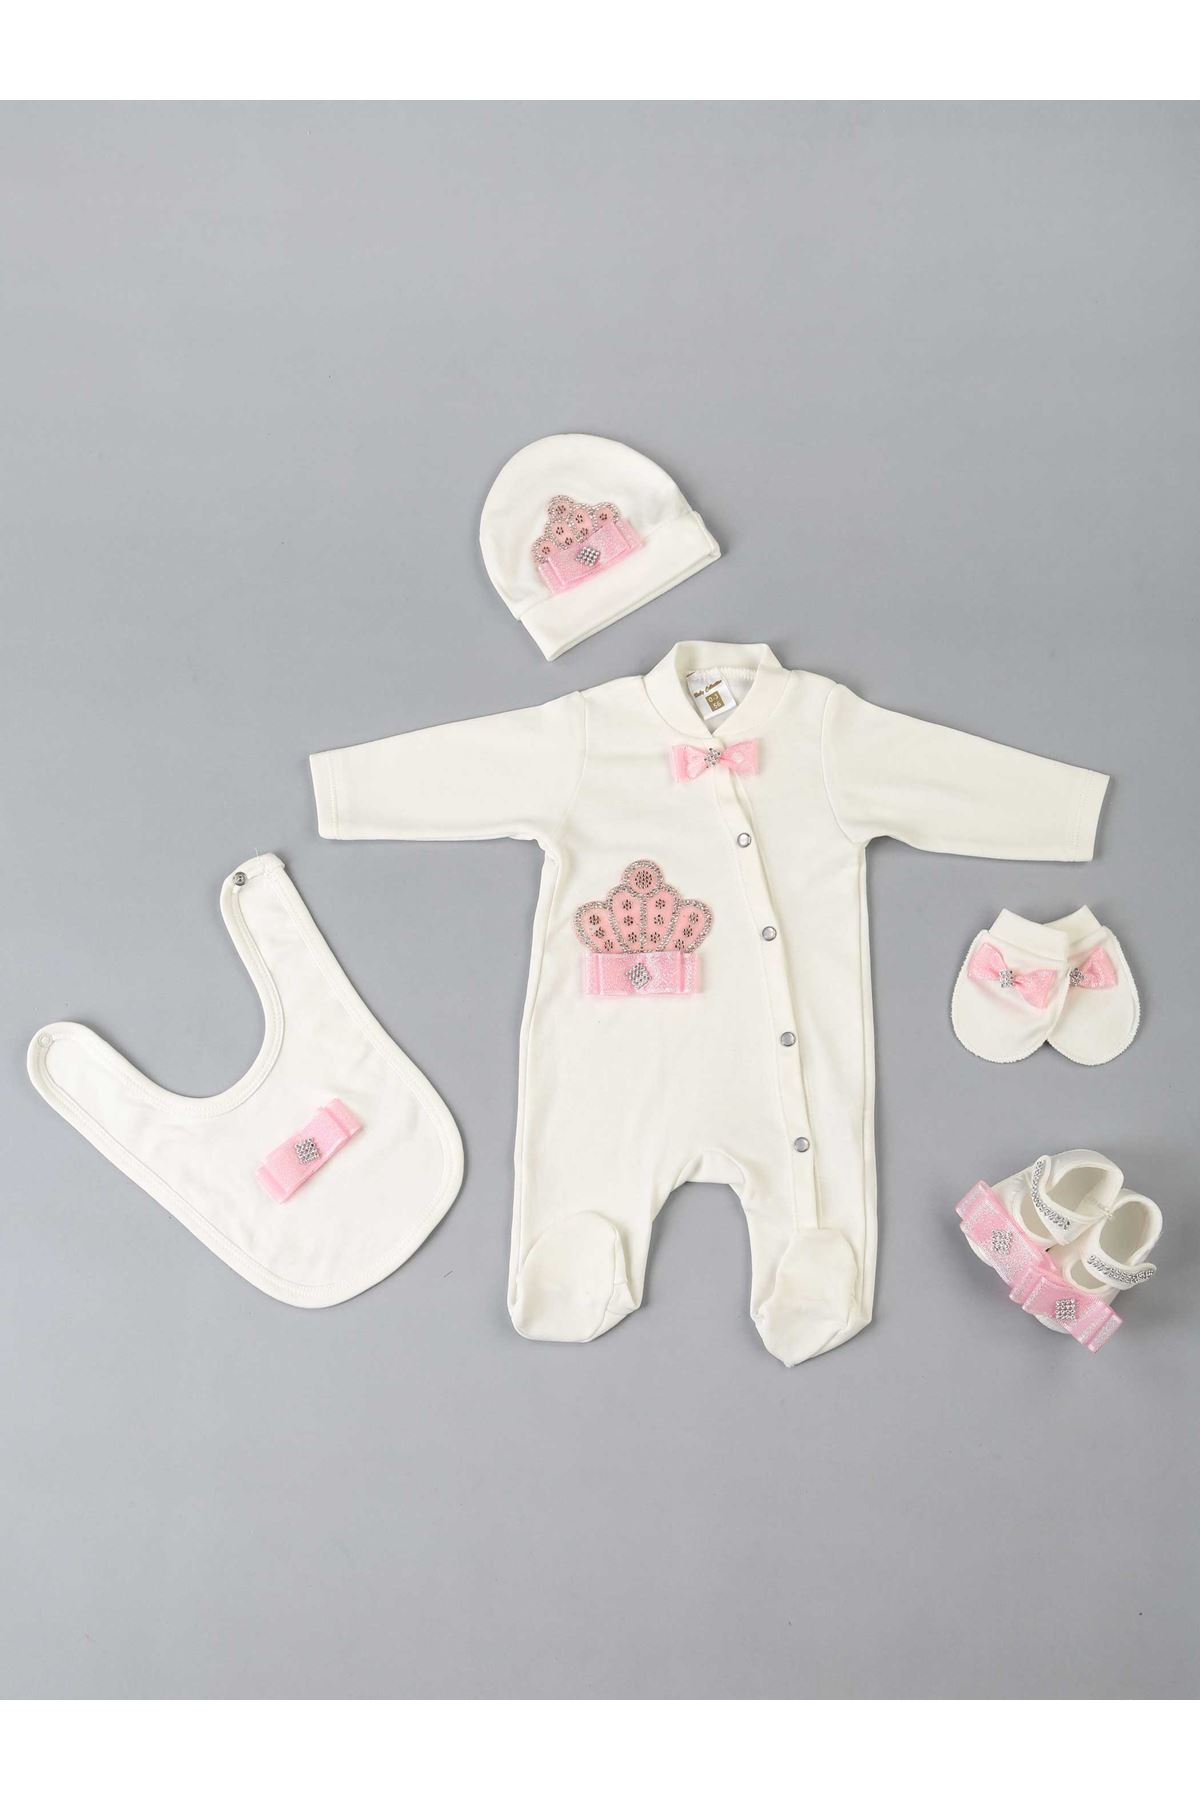 Pink Baby Girl Queen Crowned Hospital Out Jumpsuit 5 Piece Set Model Girls Infants Cute Newborn Rompers Models